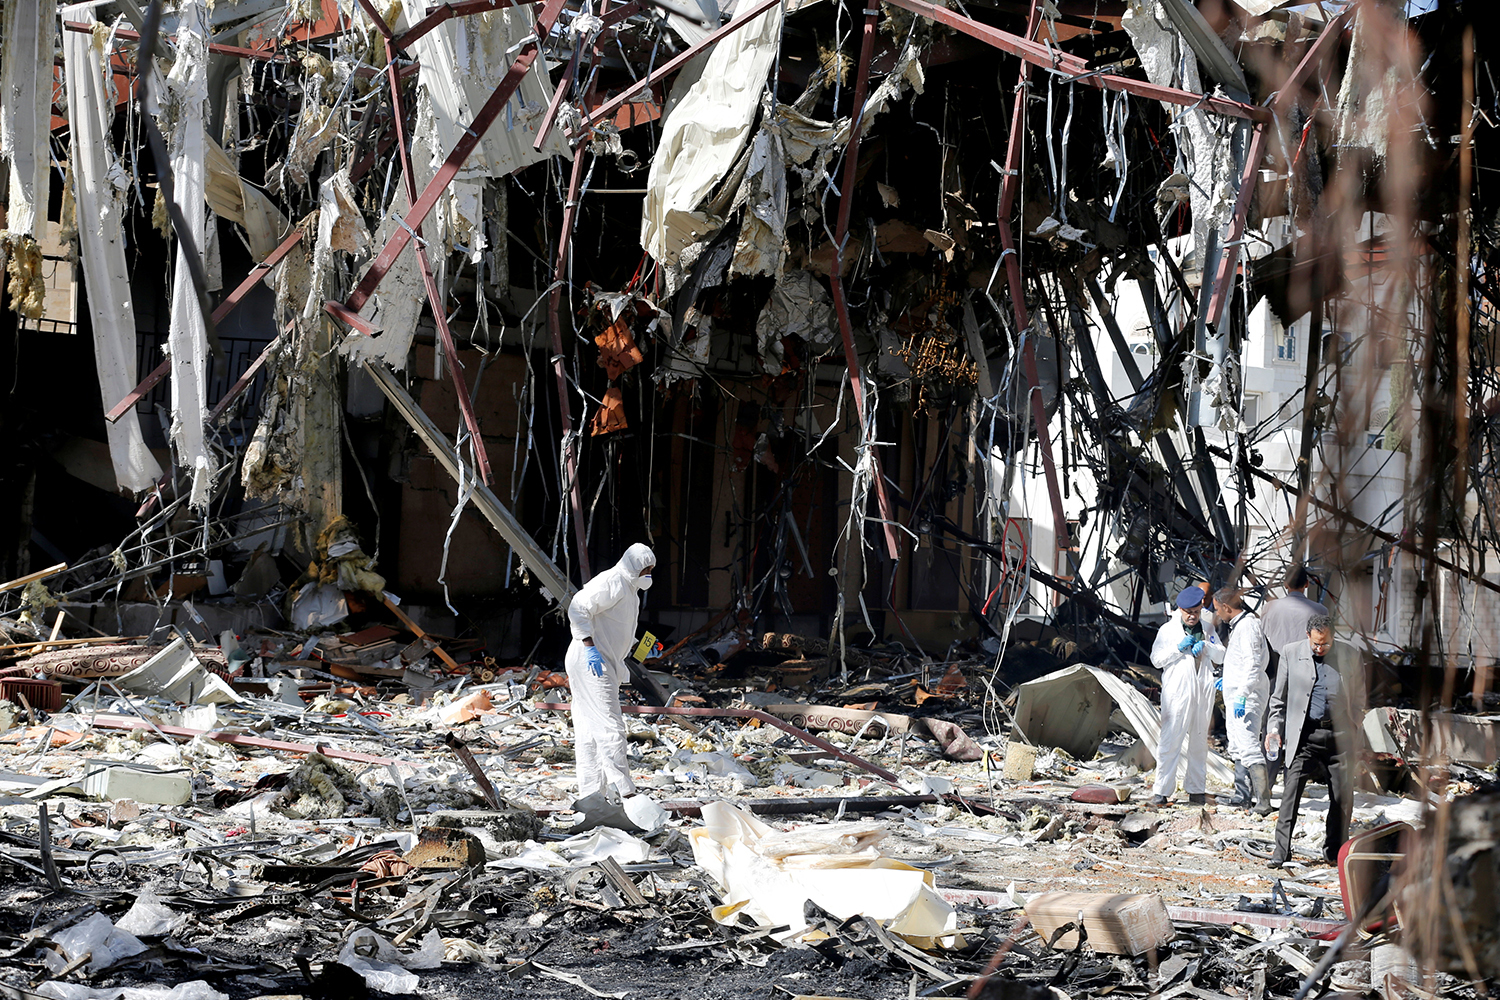 SANAA 2016-10-09 Forensic experts investigate the scene at the community hall where Saudi-led warplanes struck a funeral in Sanaa, the capital of Yemen, October 9, 2016. REUTERS/Khaled Abdullah Photo: / REUTERS / TT / kod 72000